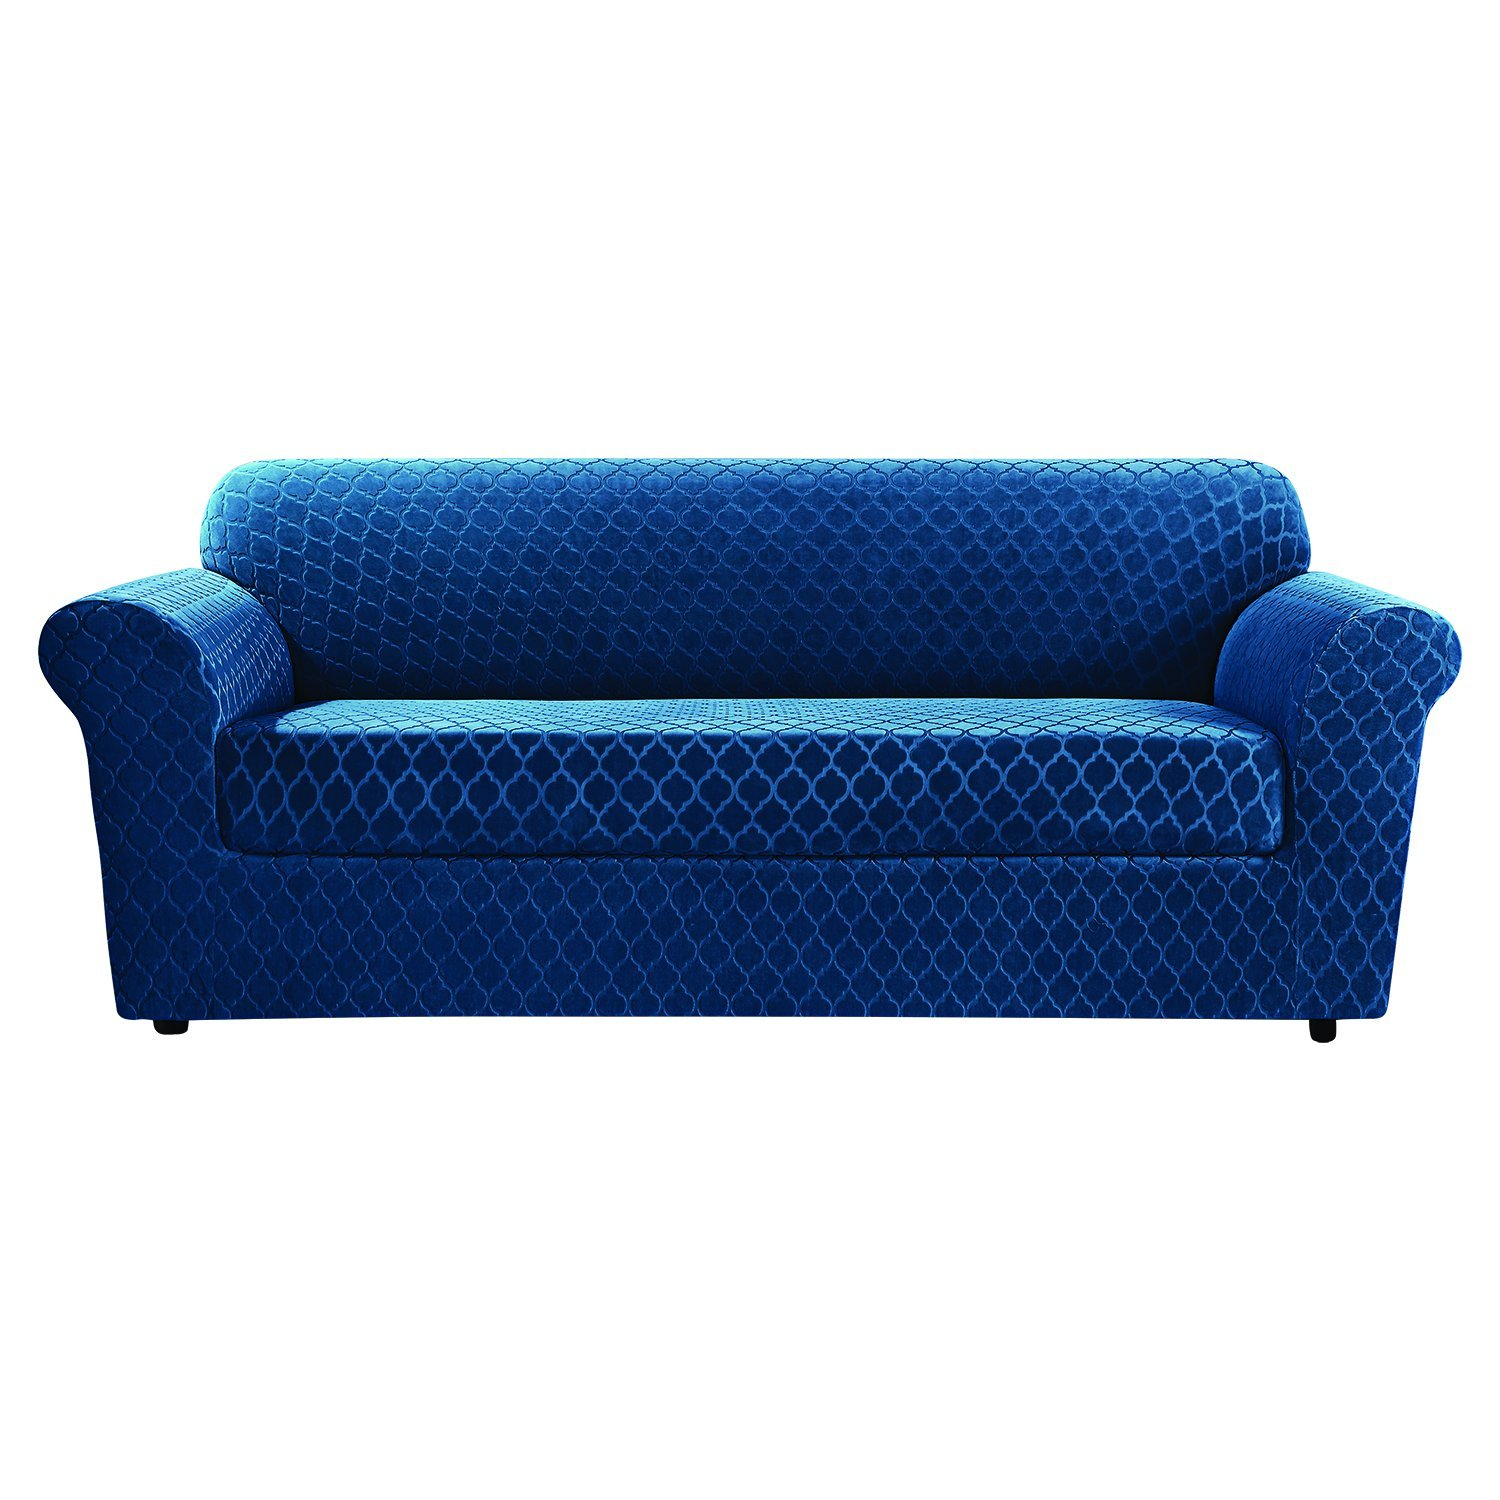 Amazon Sure Fit Stretch Grand Marrakesh 2 Piece Sofa